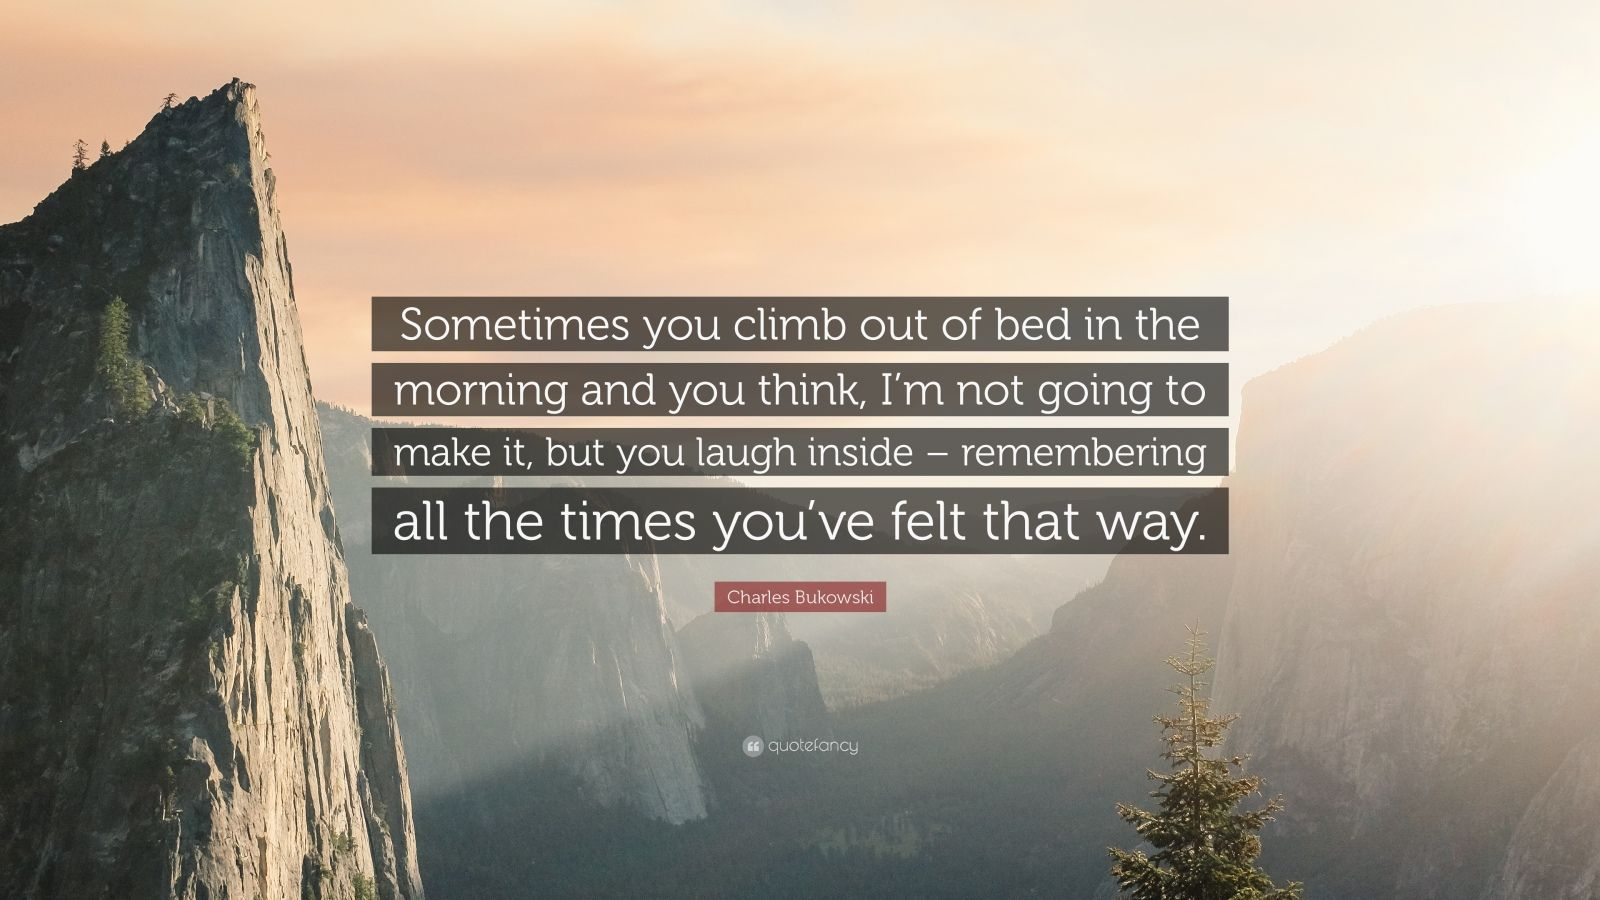 """Sometimes you climb out of bed in the morning and you think, I'm not going to make it, but you laugh inside – remembering all the times you've felt that way."" – Charles Bukowski [1600×900]"